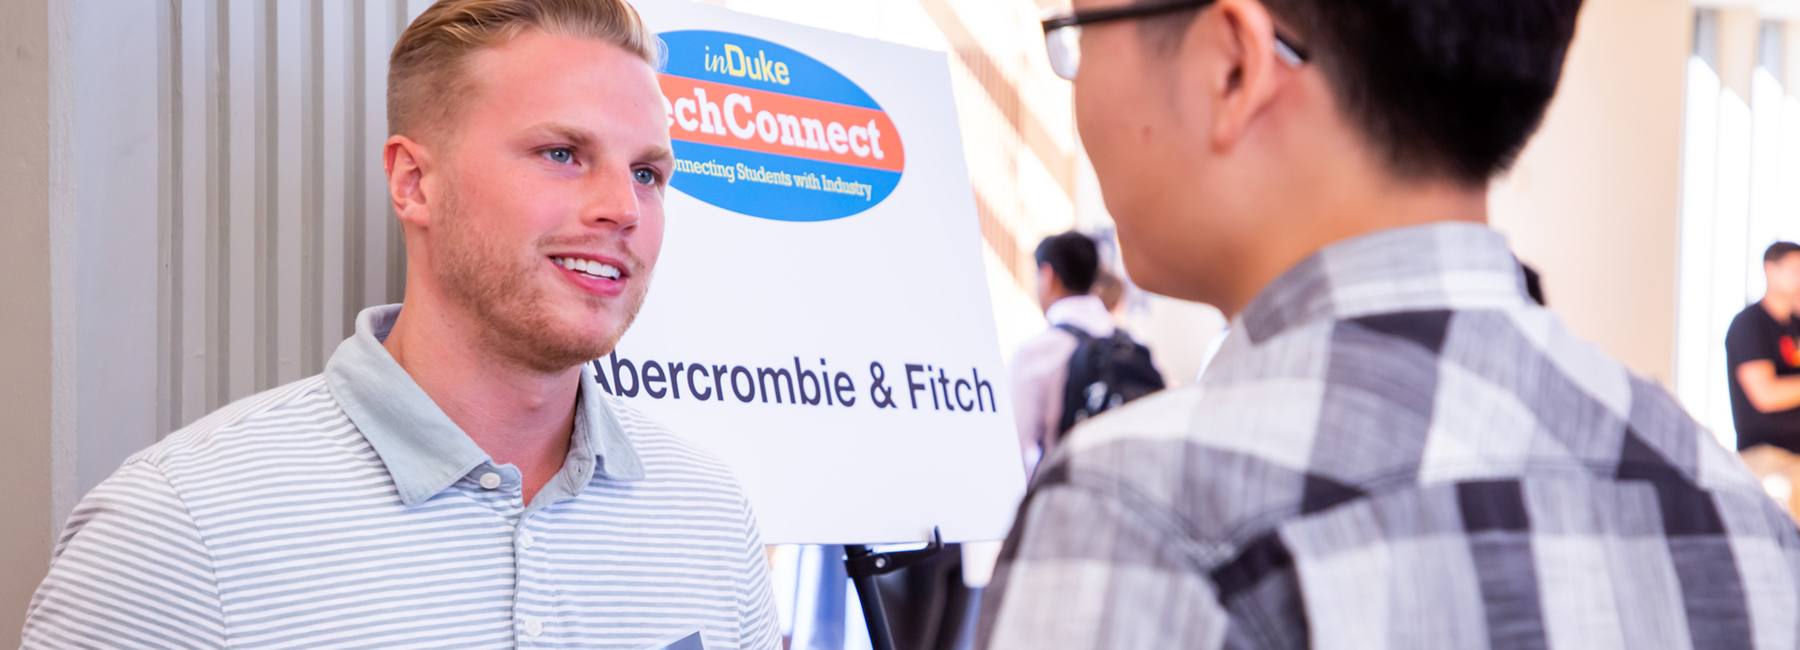 Techconnect 2019 Sept-Abercrombie&Fitch